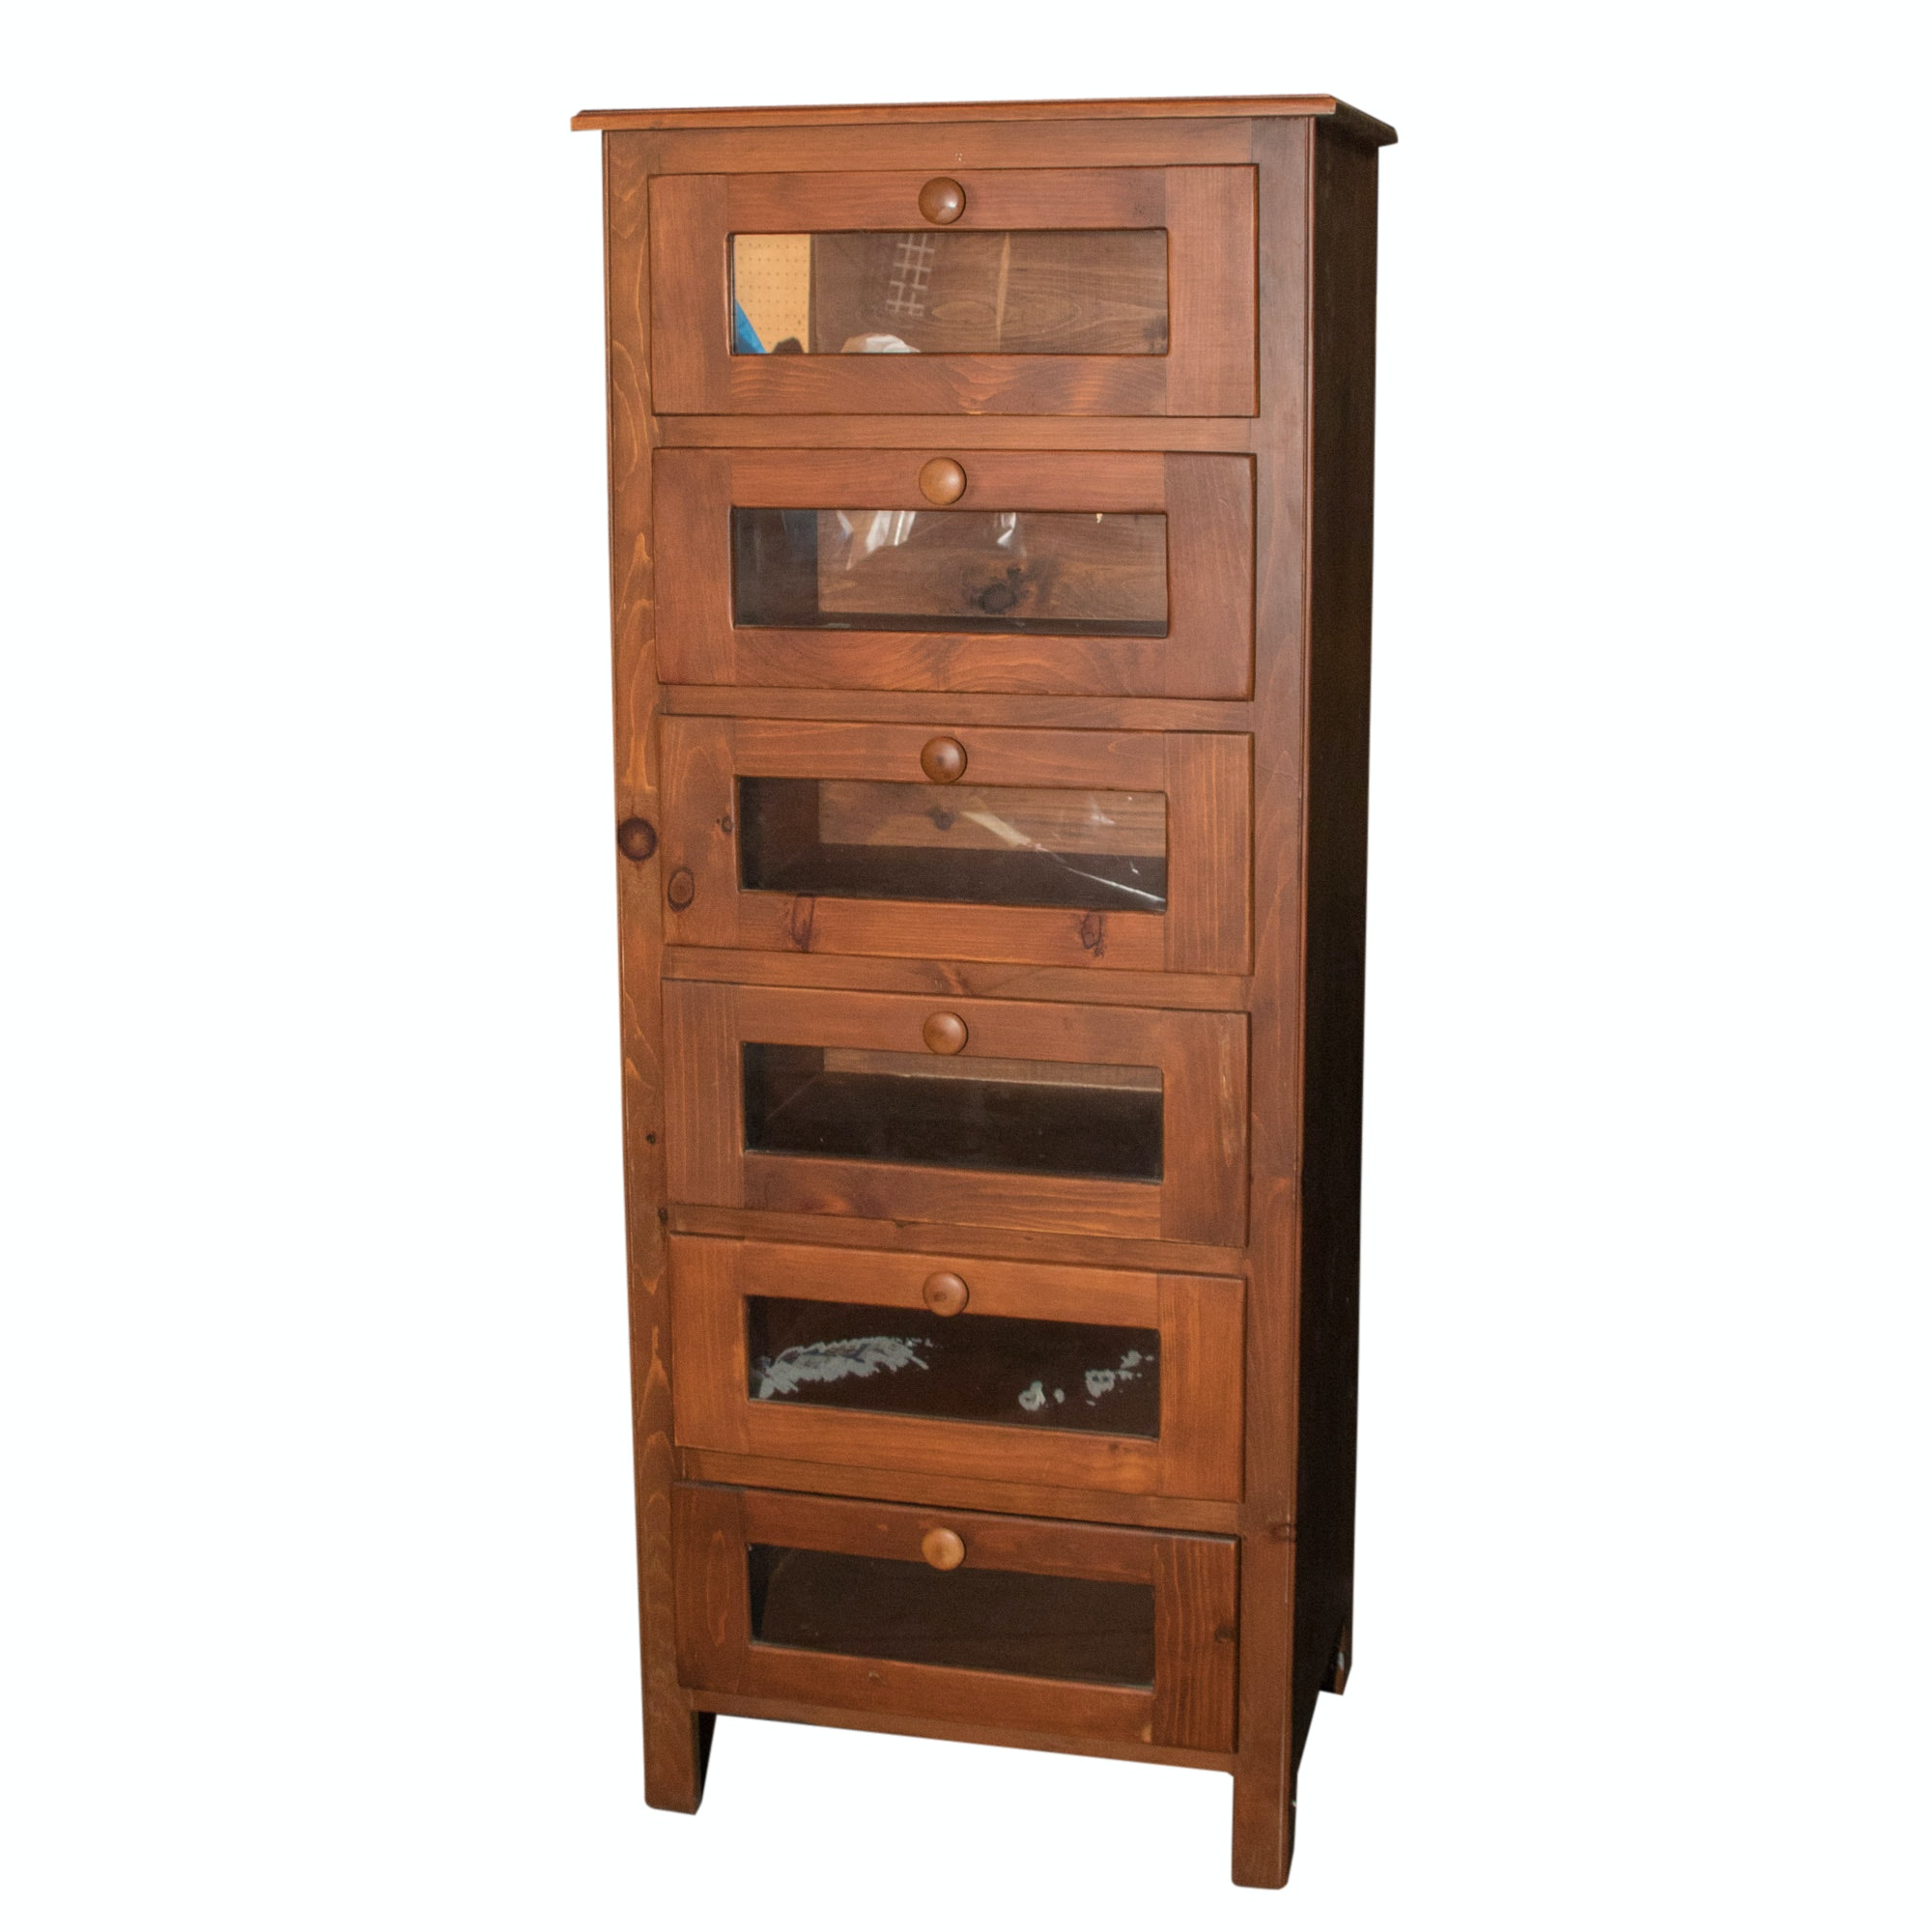 Contemporary Cabinet of Drawers